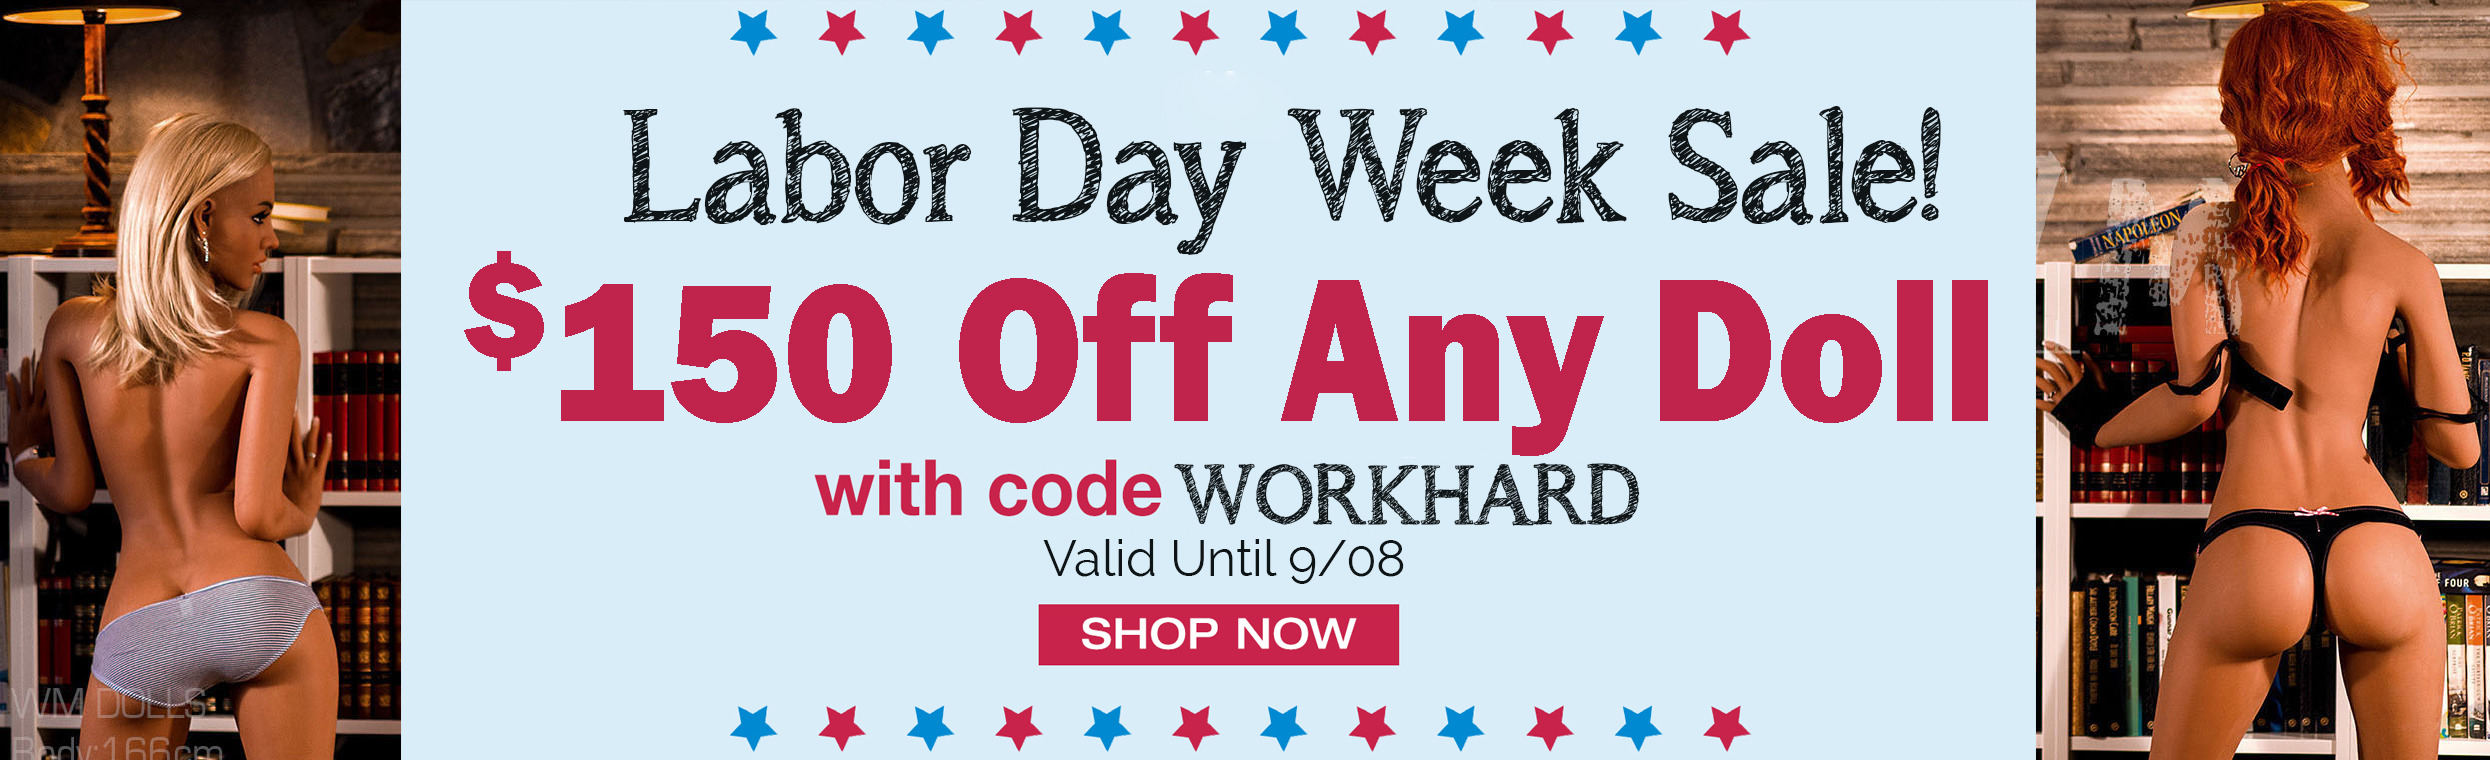 Labor Day Sale 150 Off